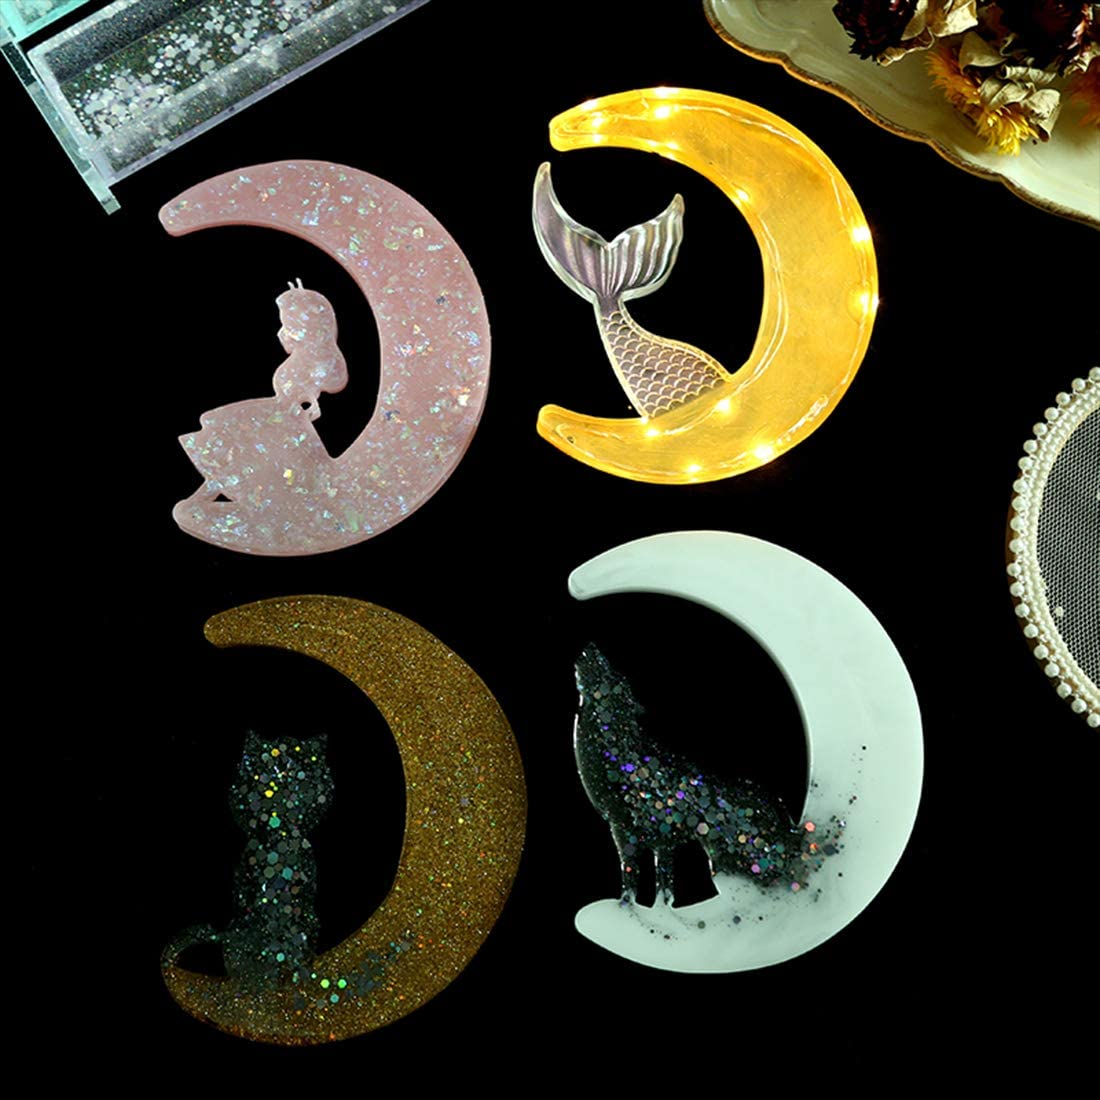 FineInno 4 Pack Crescents Moon Mold Crescents Moon Molds Moon Mermaid Tail,Moon Princess Moon Cat Epoxy Resin Molds Silicone Epoxy Molds for Making Moon Wolf